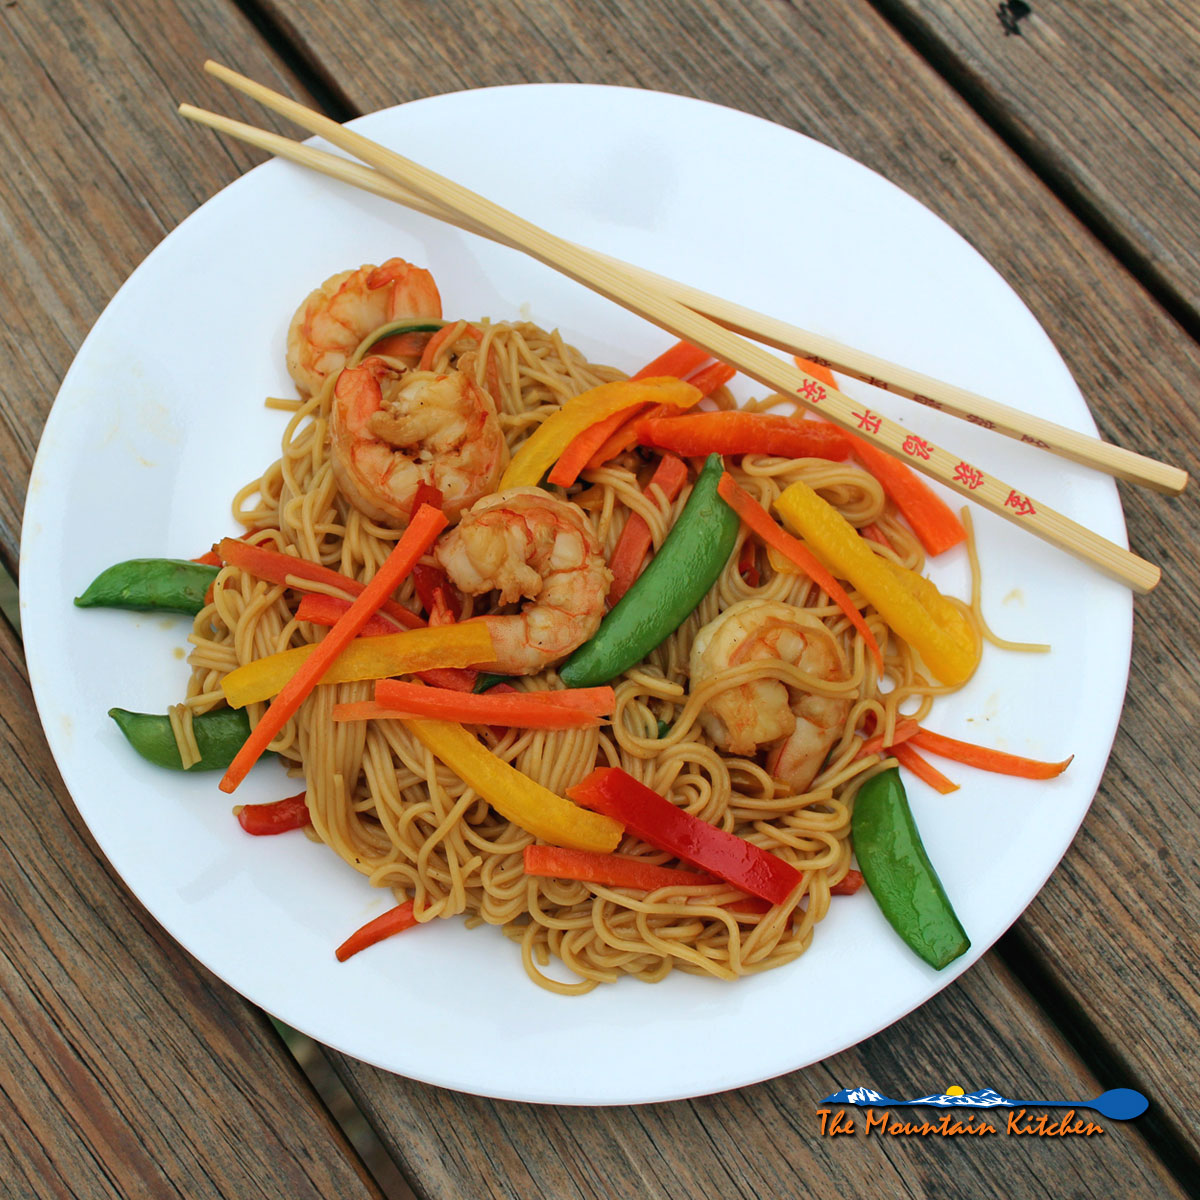 This quick and easy shrimp lo mein is guaranteed to satisfy your take-out craving in less than 30 minutes in your very own kitchen.